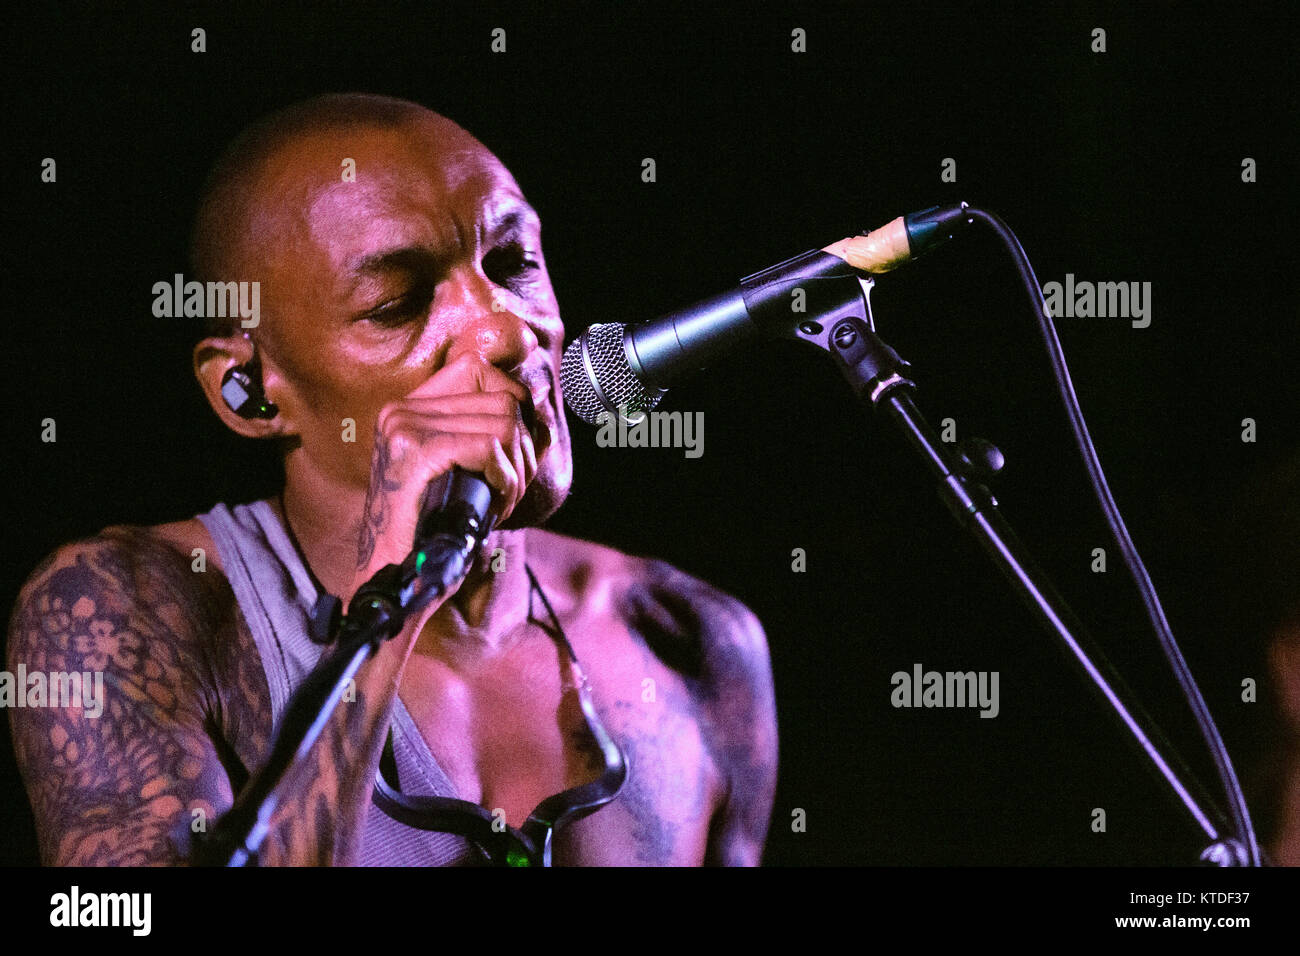 The English trip hop musician, singer and producer Tricky performs a live concert at Forum in Copenhagen. Denmark, - Stock Image